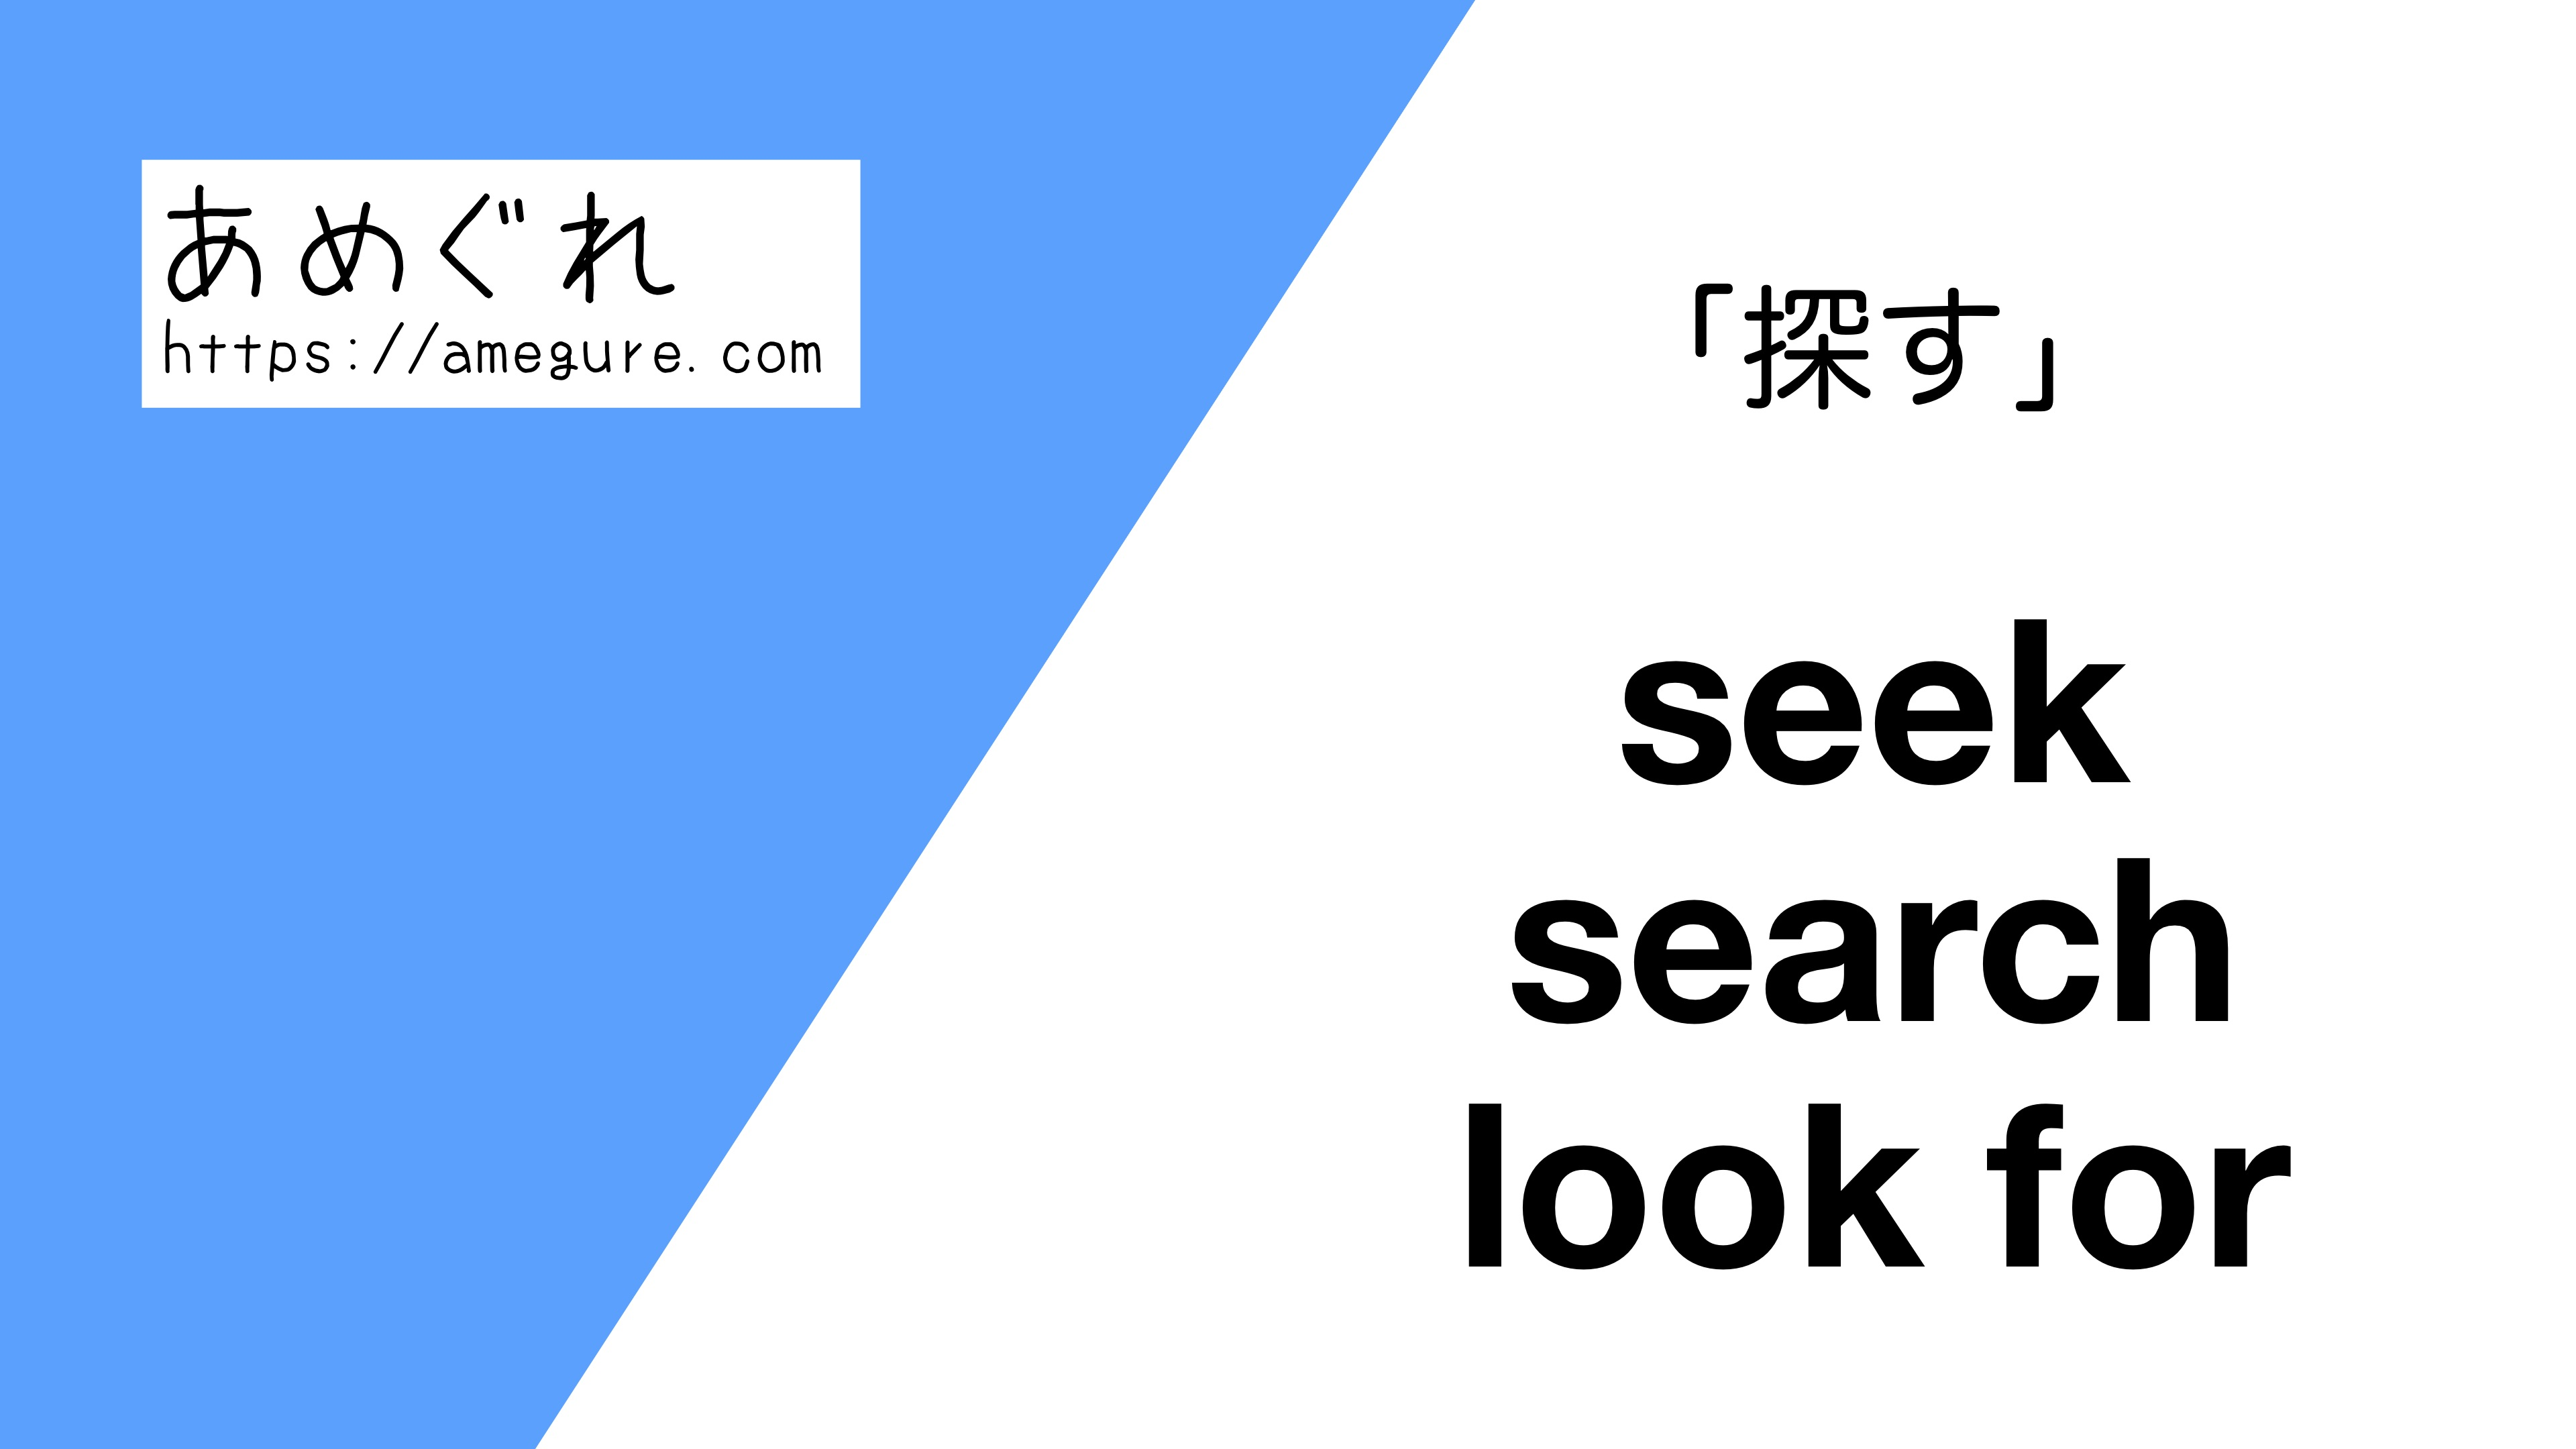 seek-search-look-for違い